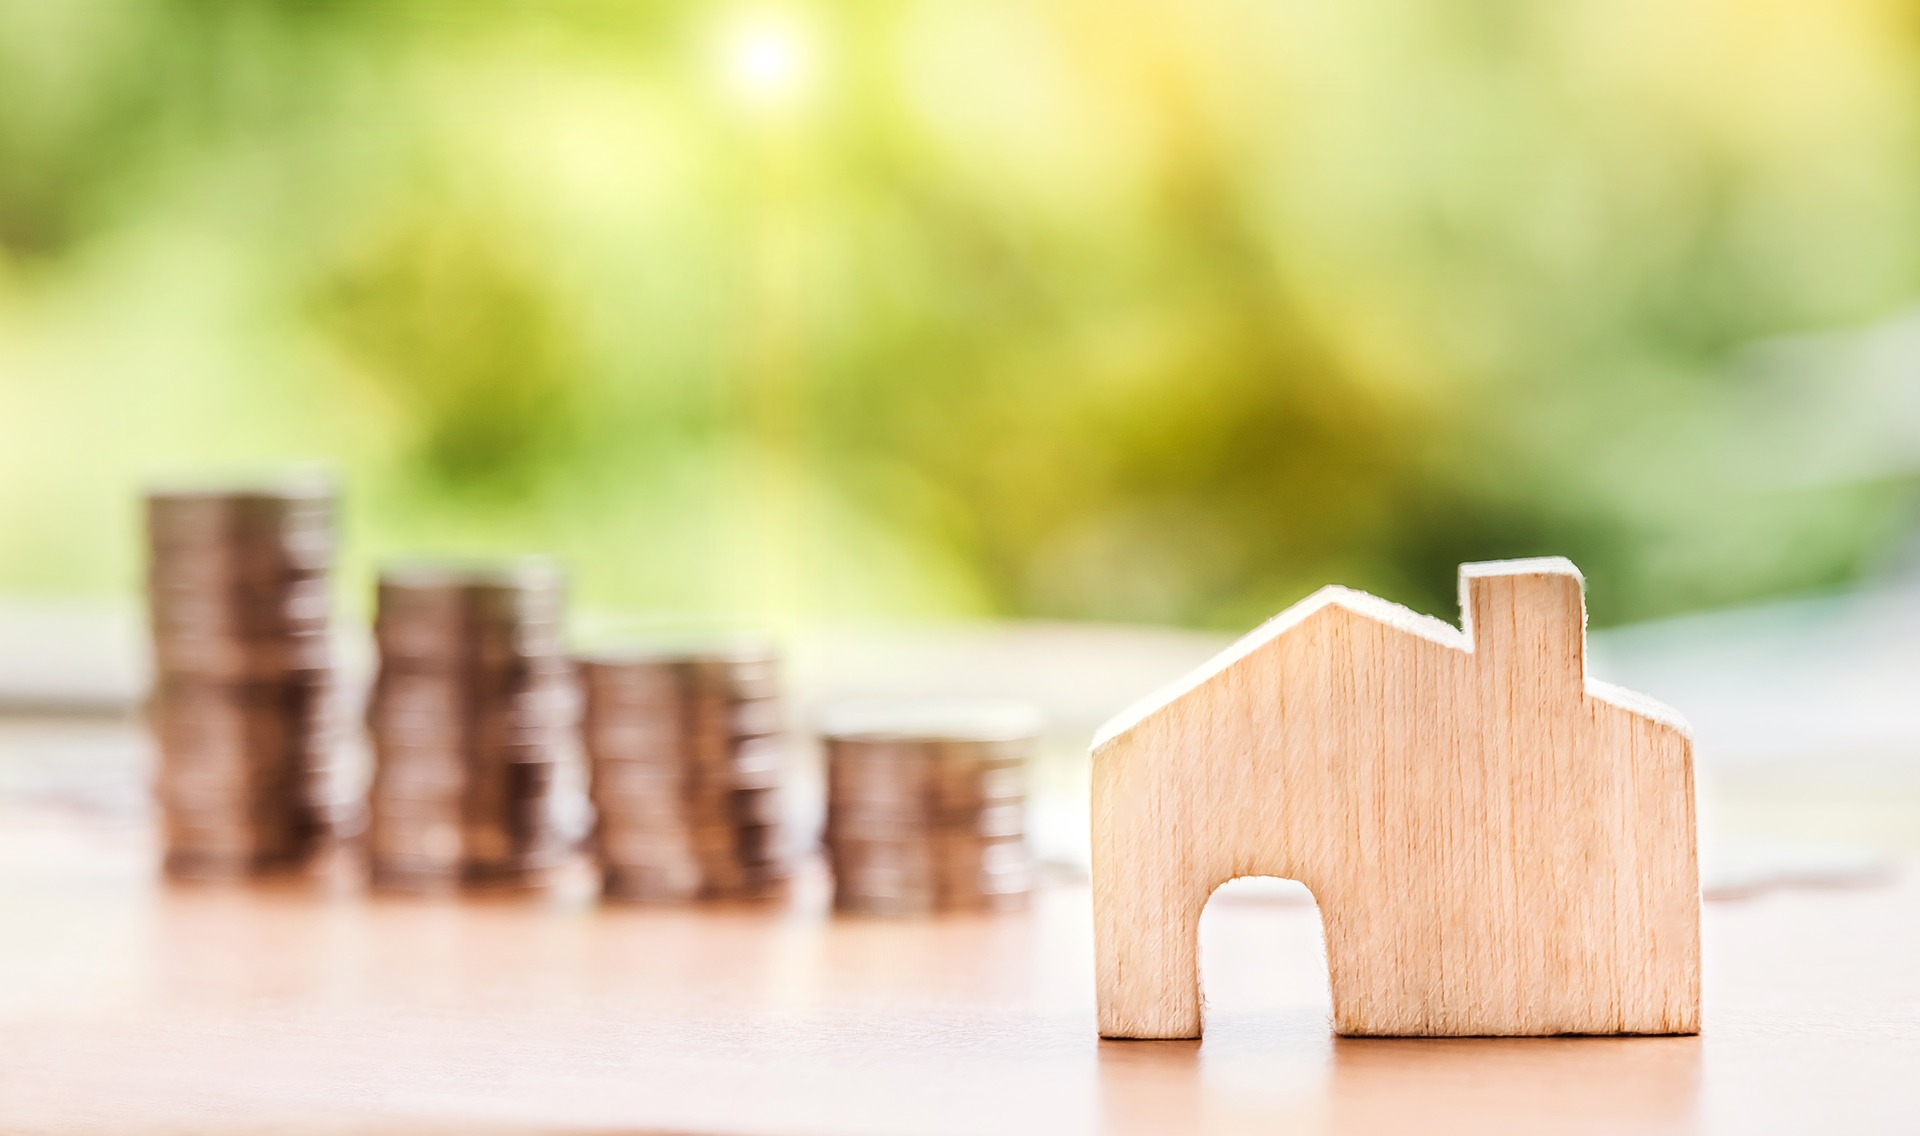 How to Find the Value of My Home